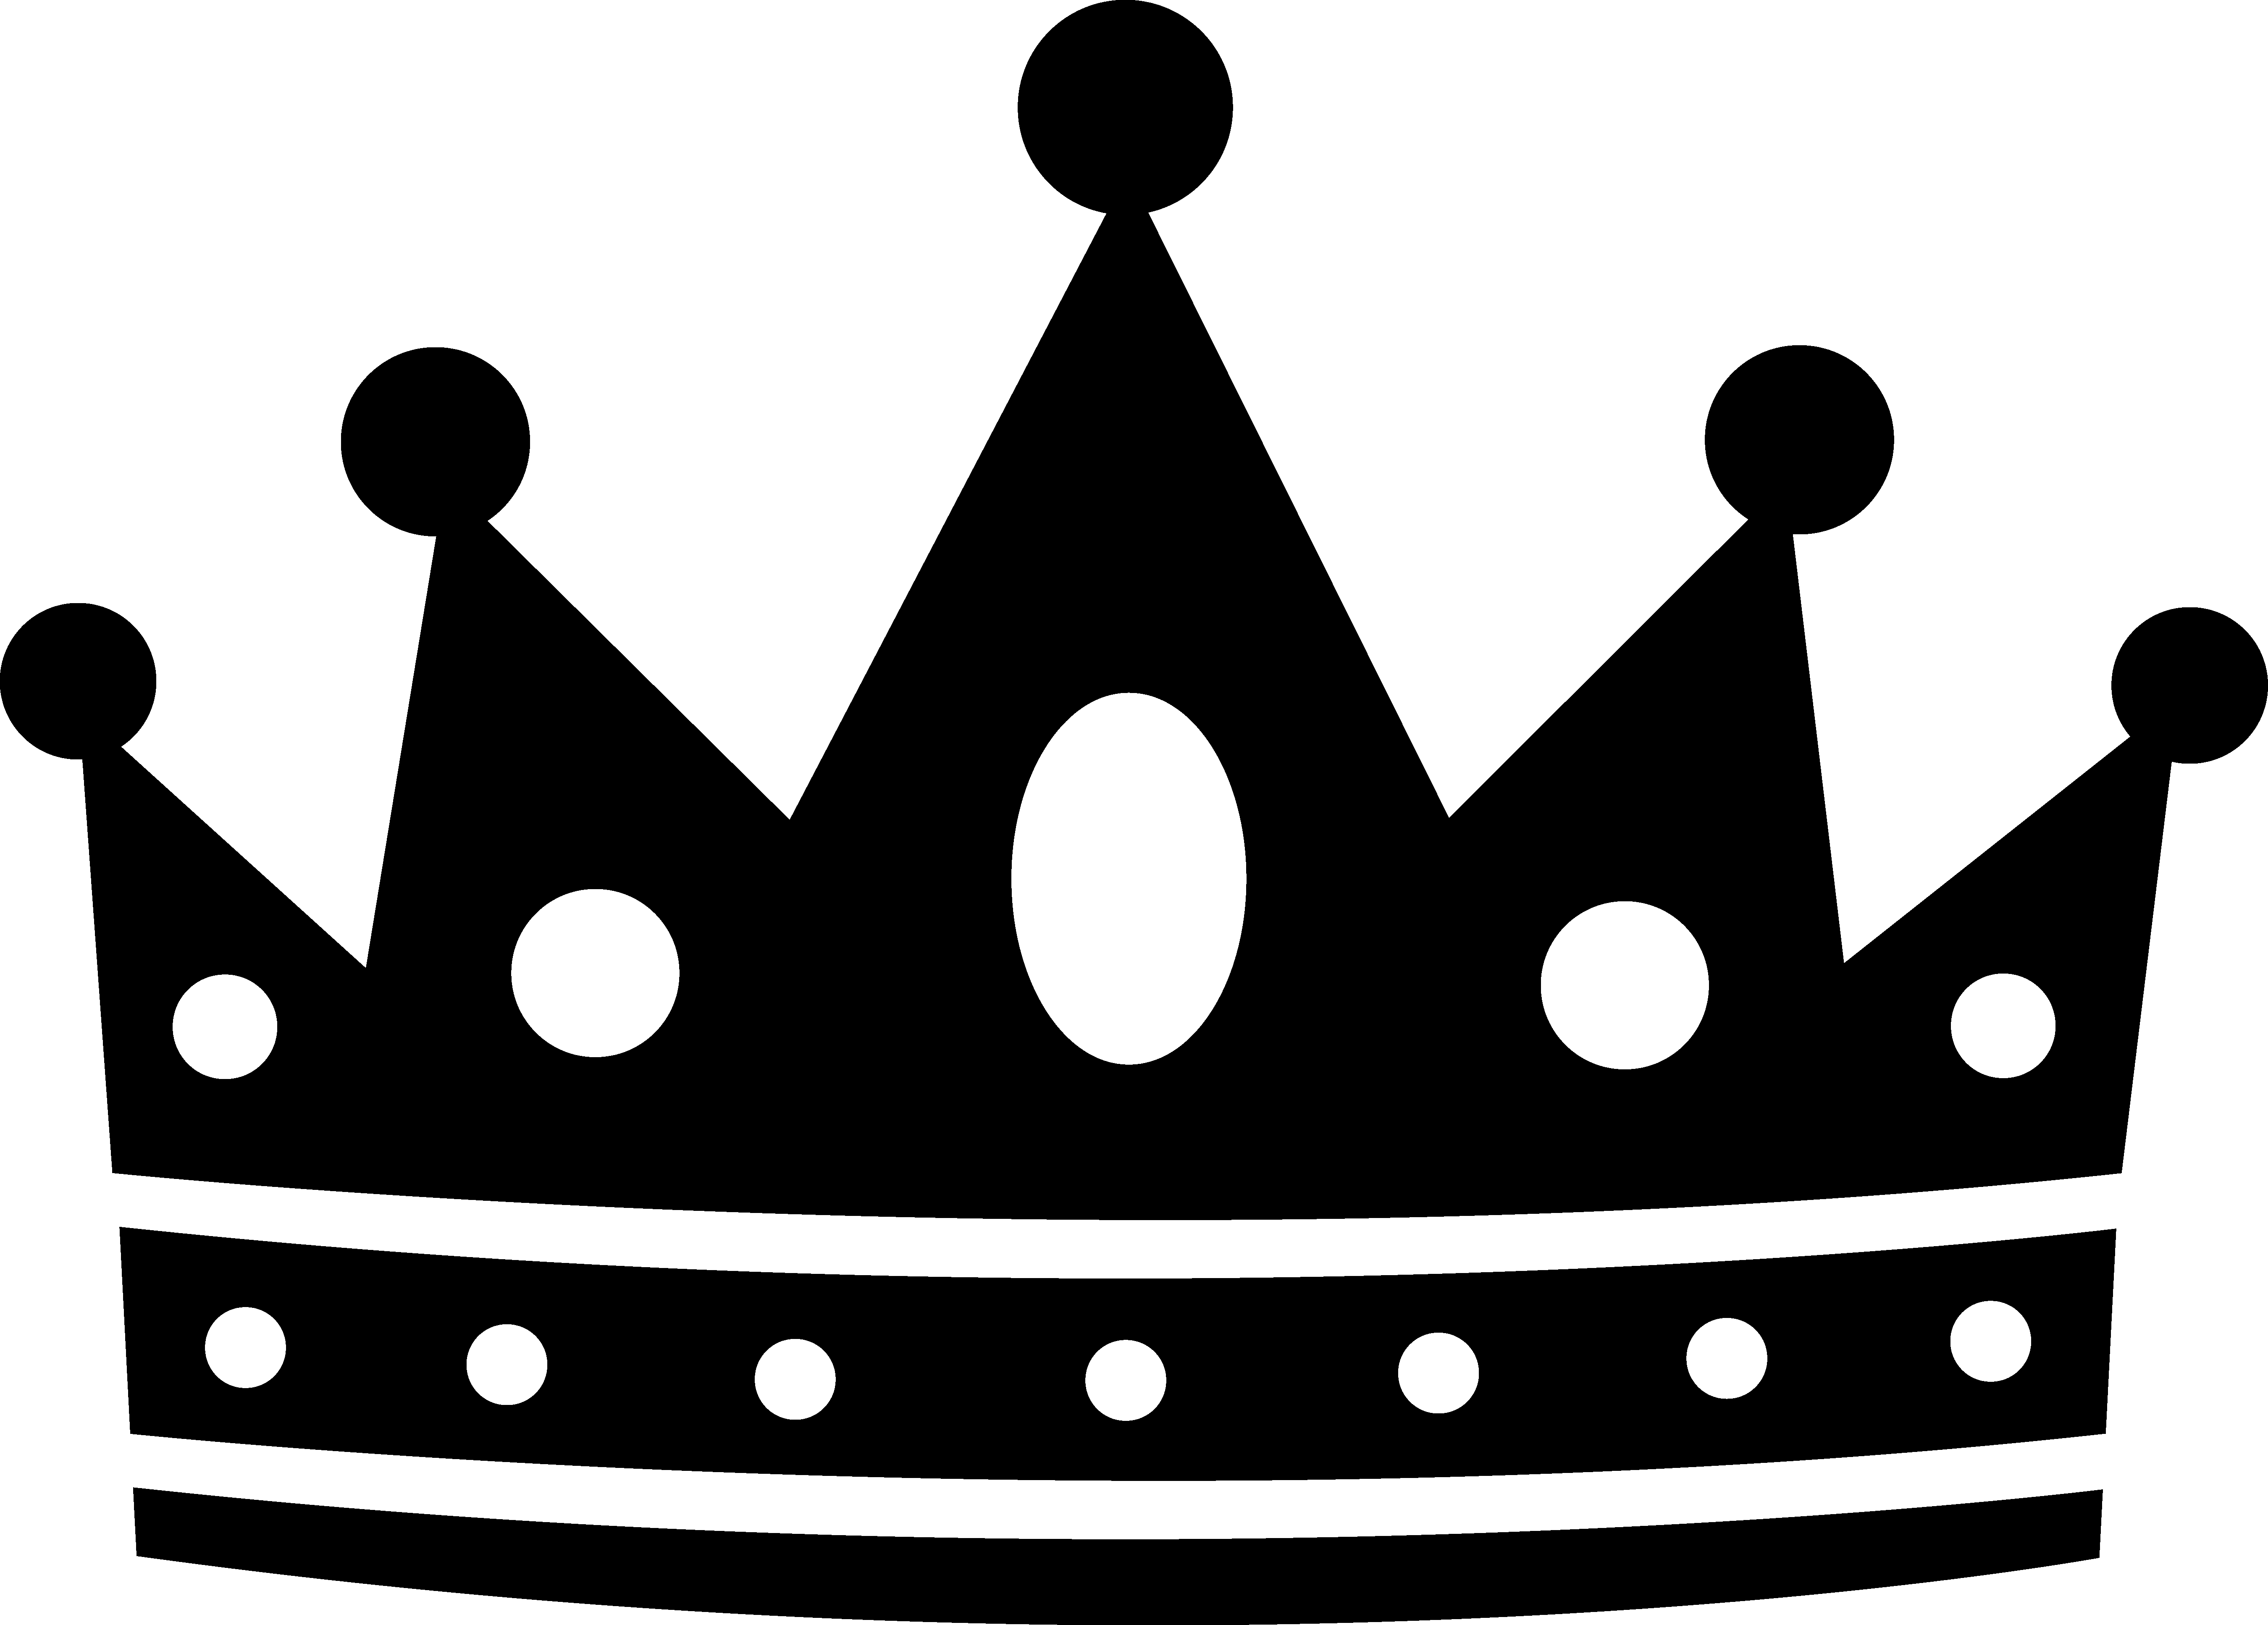 free vector clipart crown - photo #46